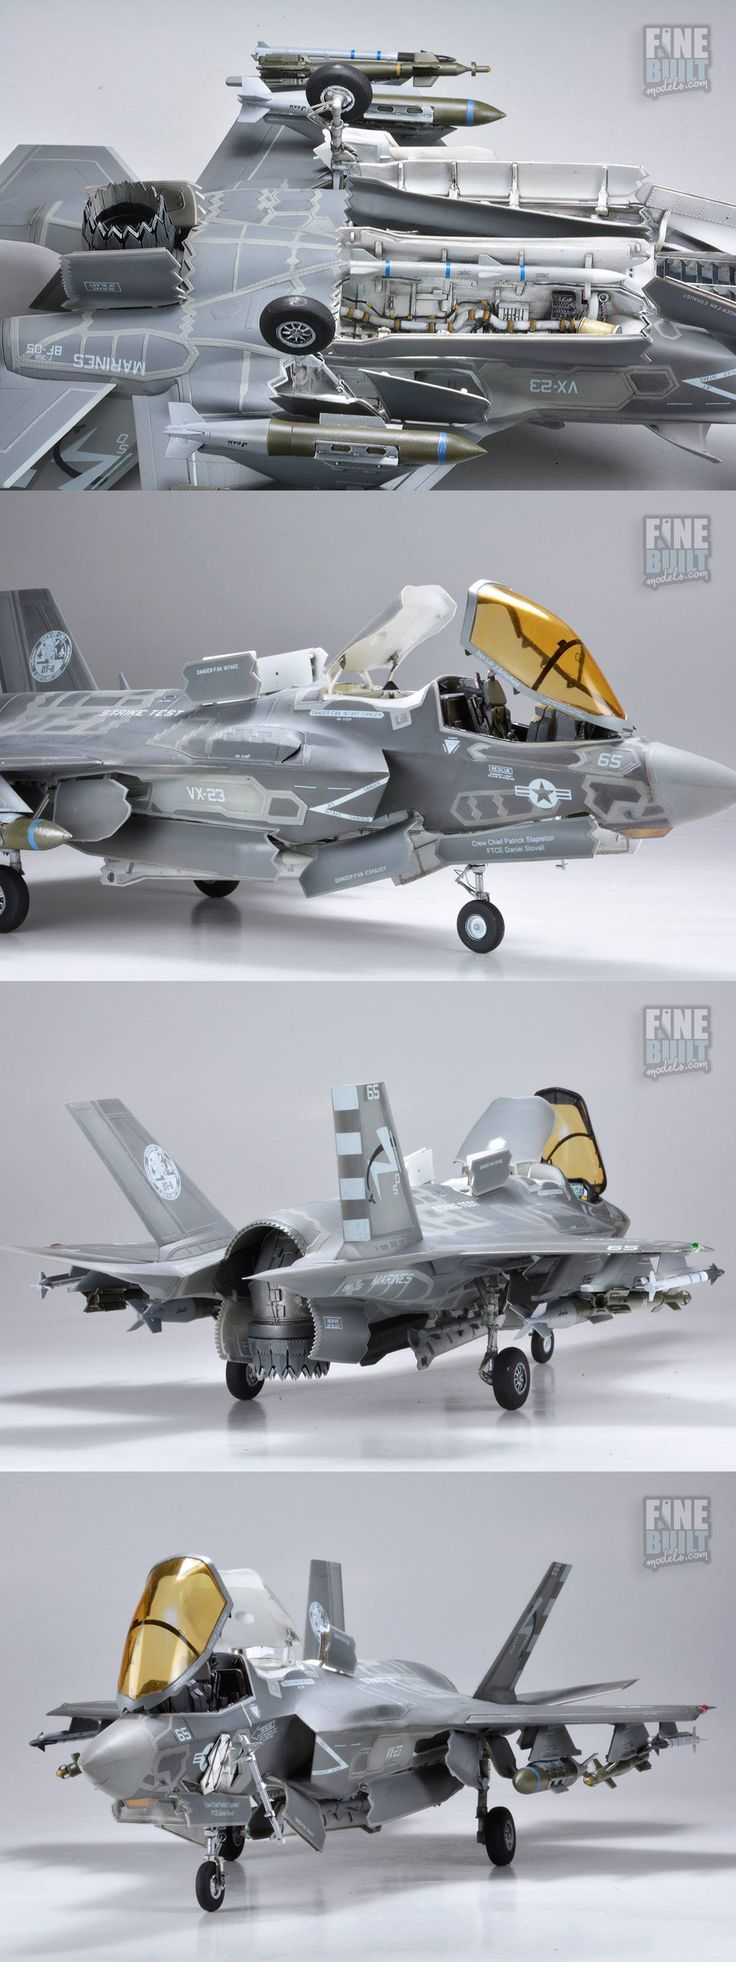 1/48th Scale - USMC Lockheed F-35B Lightning II - Kitty Hawk Kit